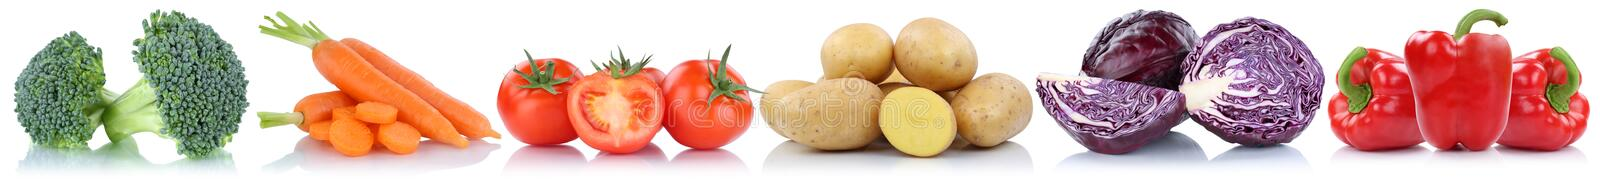 Vegetables tomatoes carrots potatoes bell pepper in a row isolated stock photo